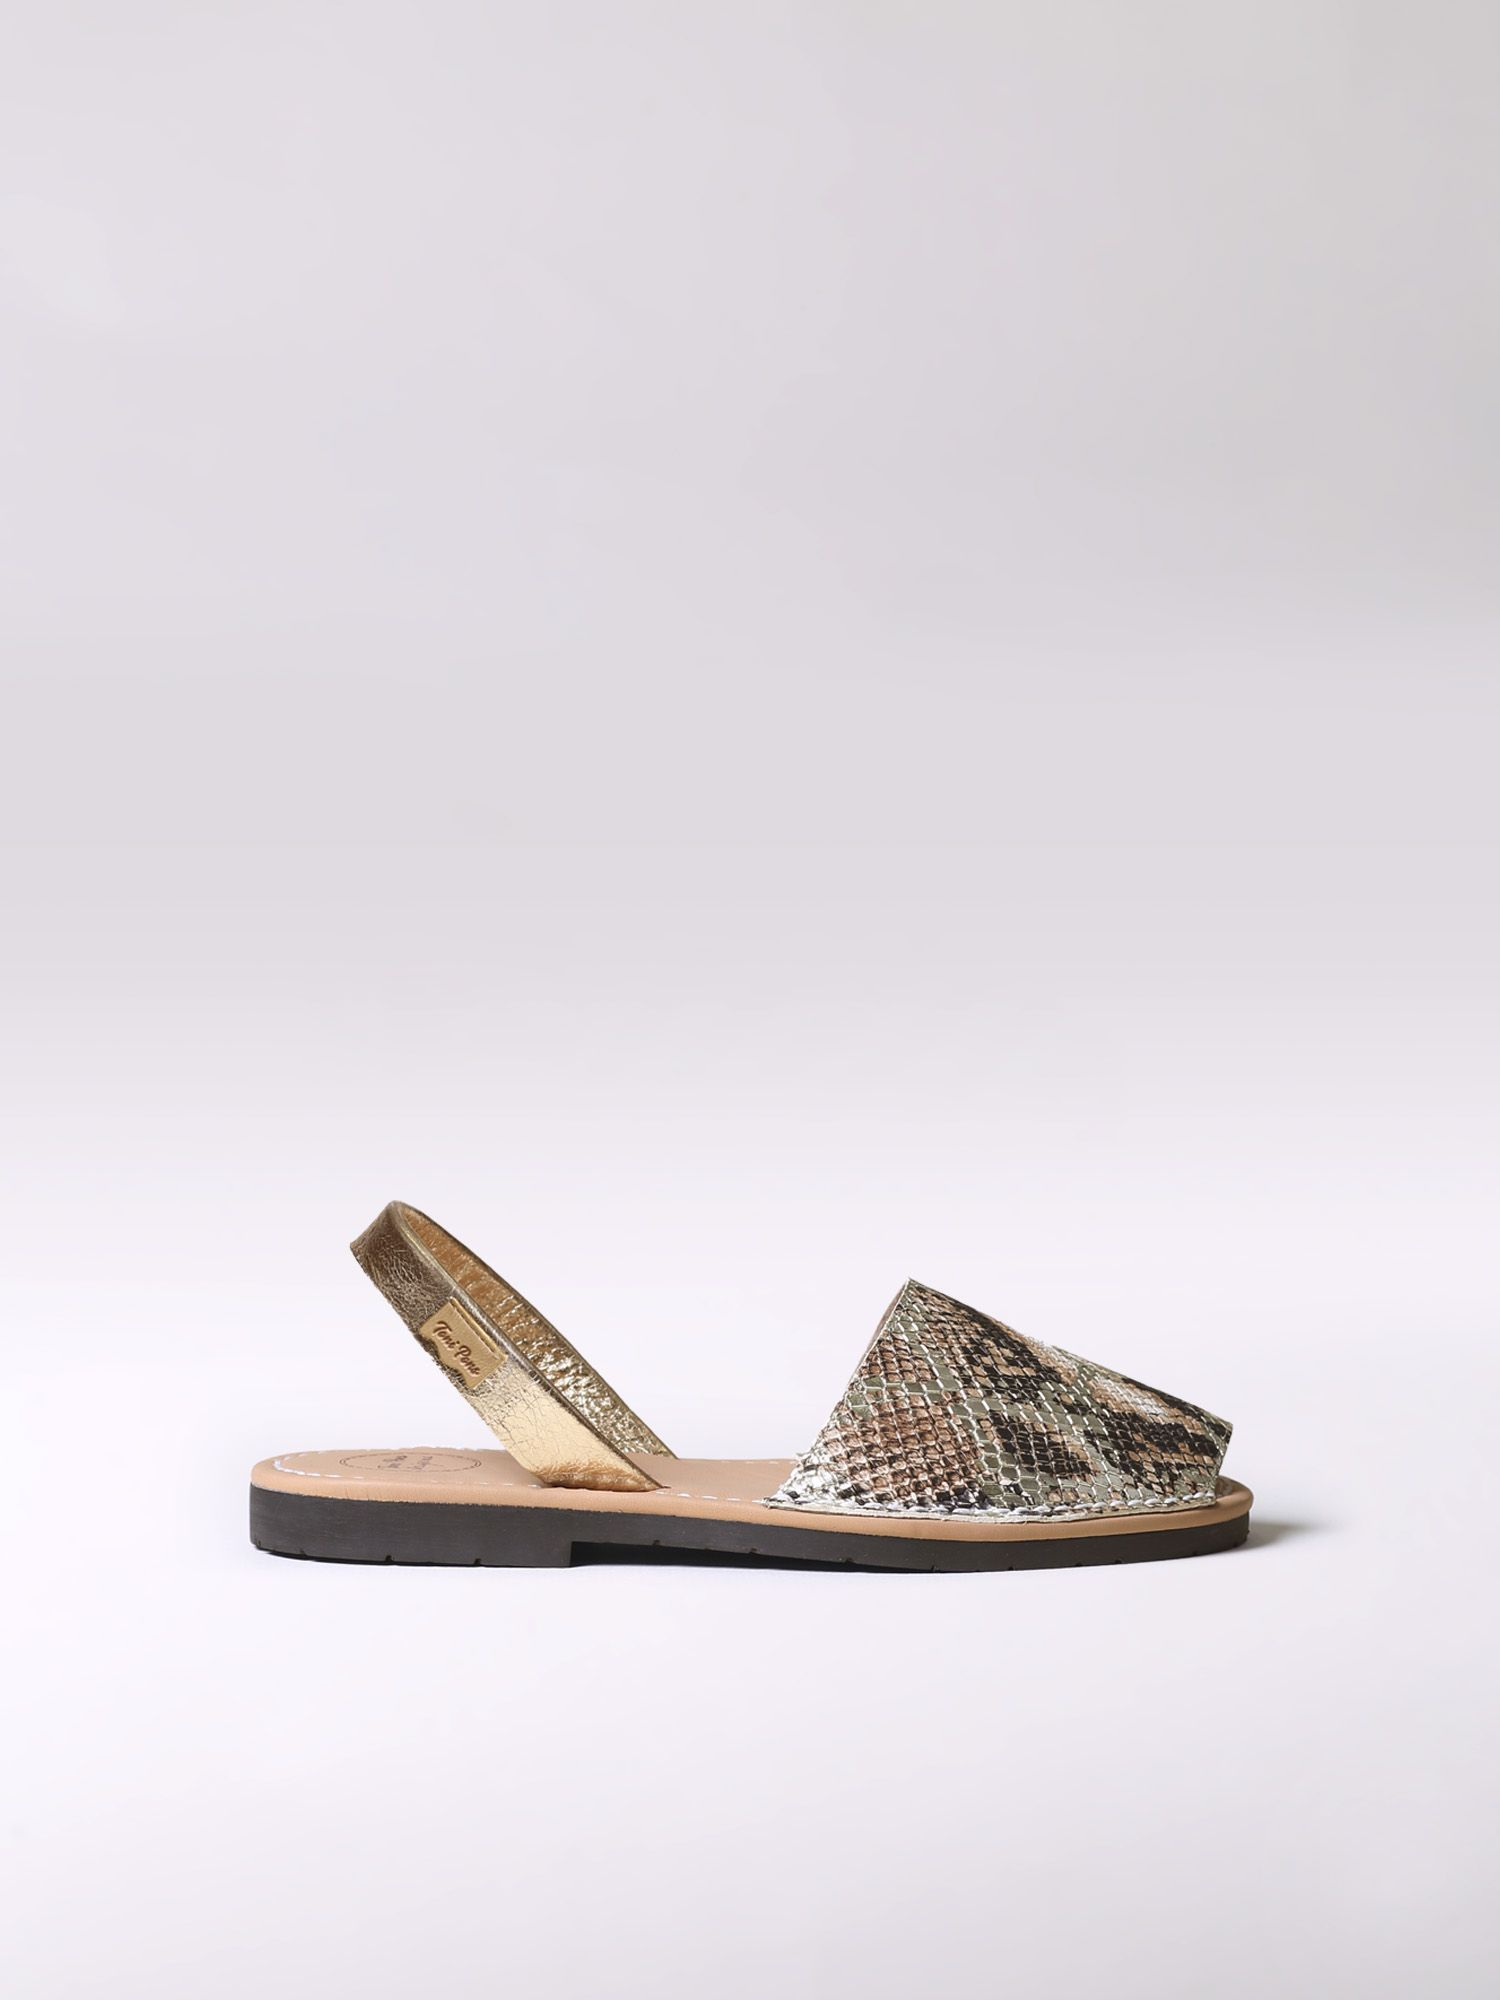 Leather menorquine sandal - MAO-MK